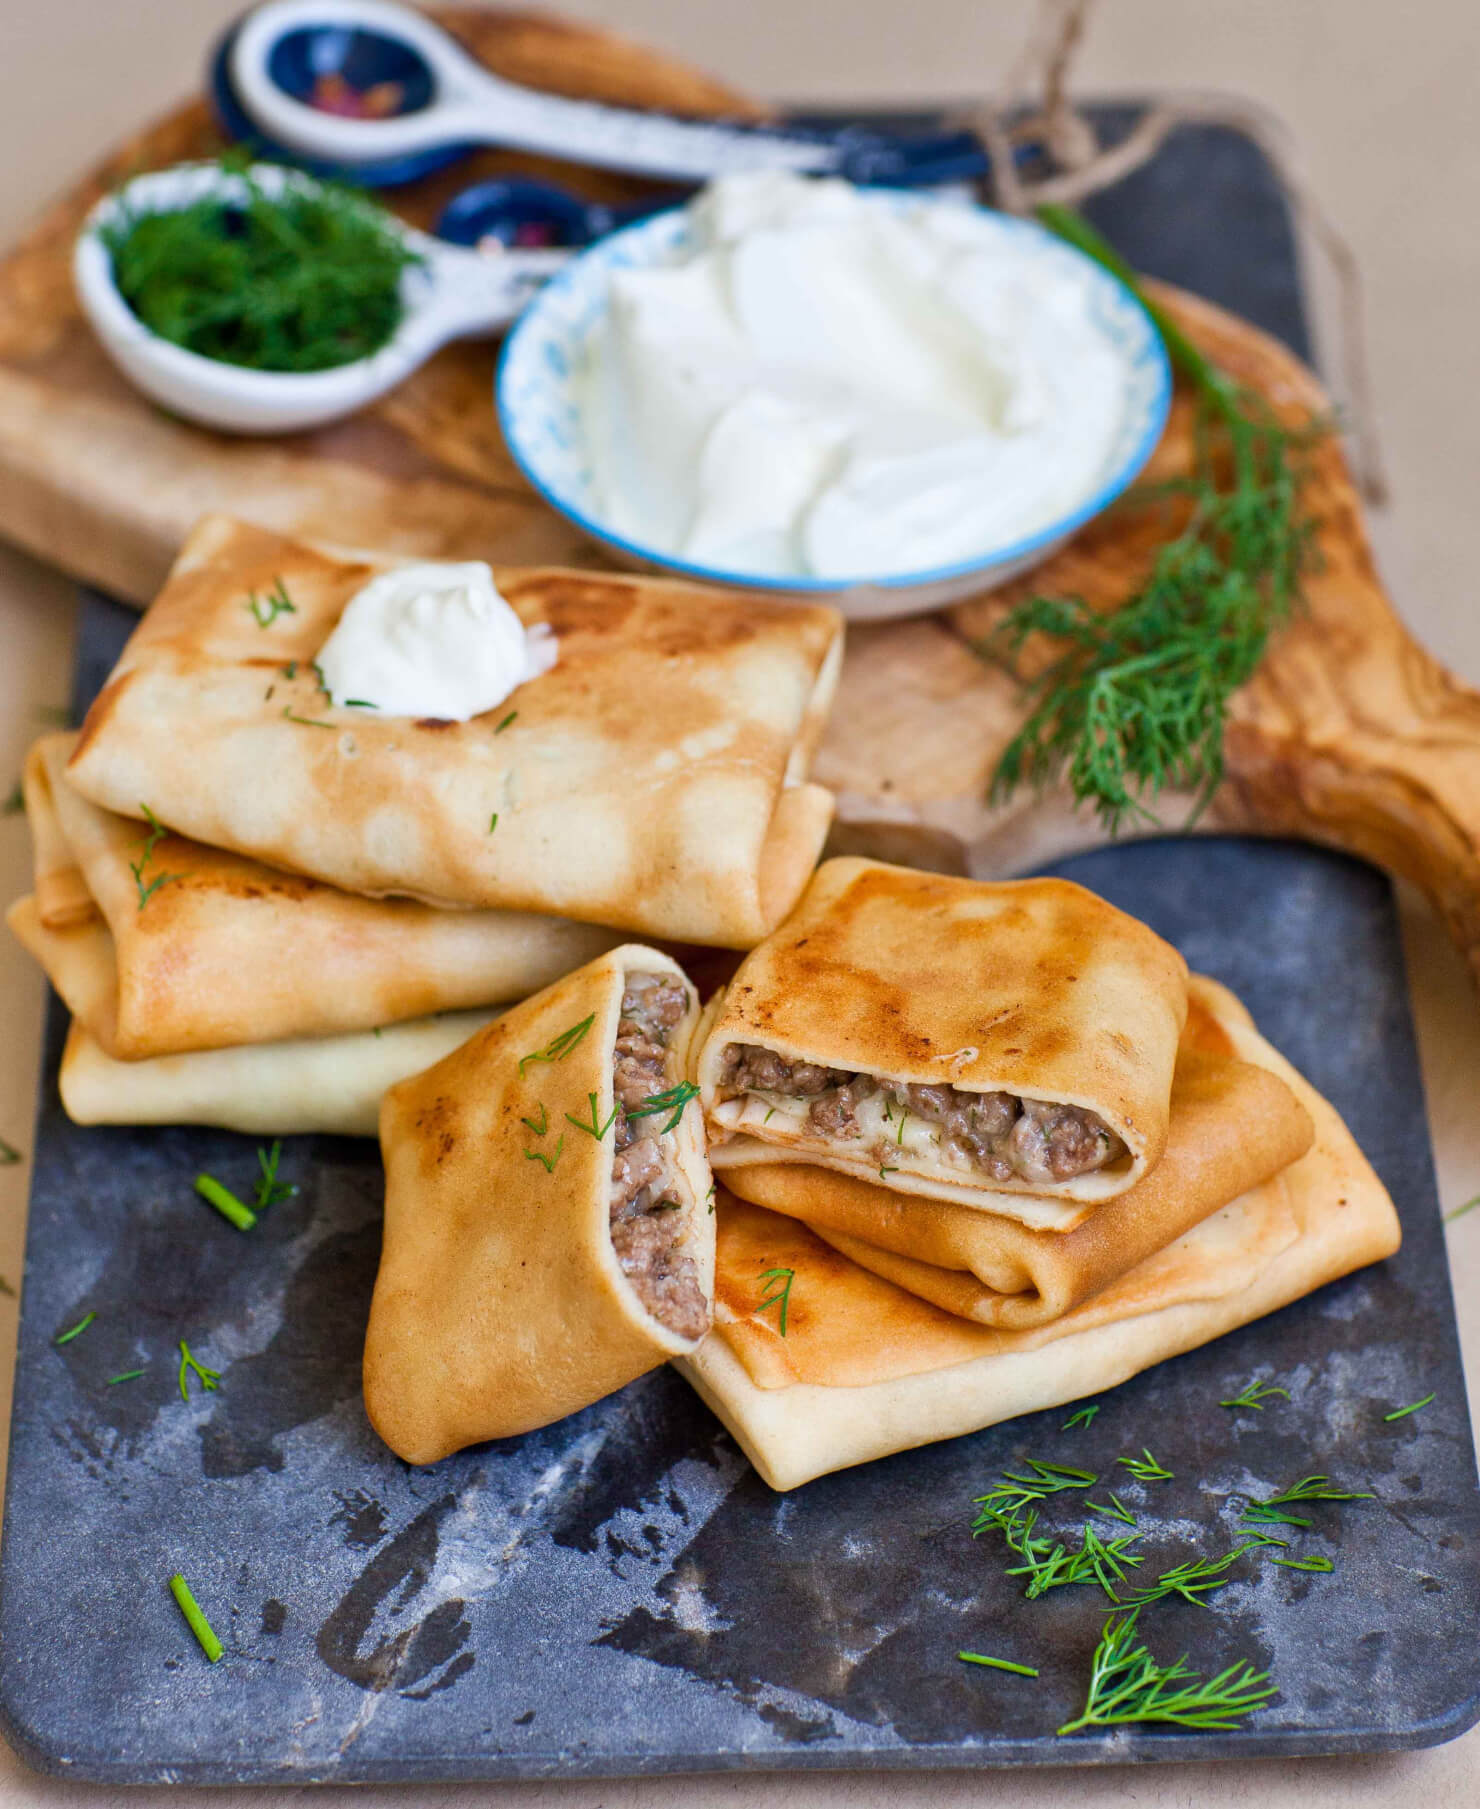 Cheese and Meat Blini